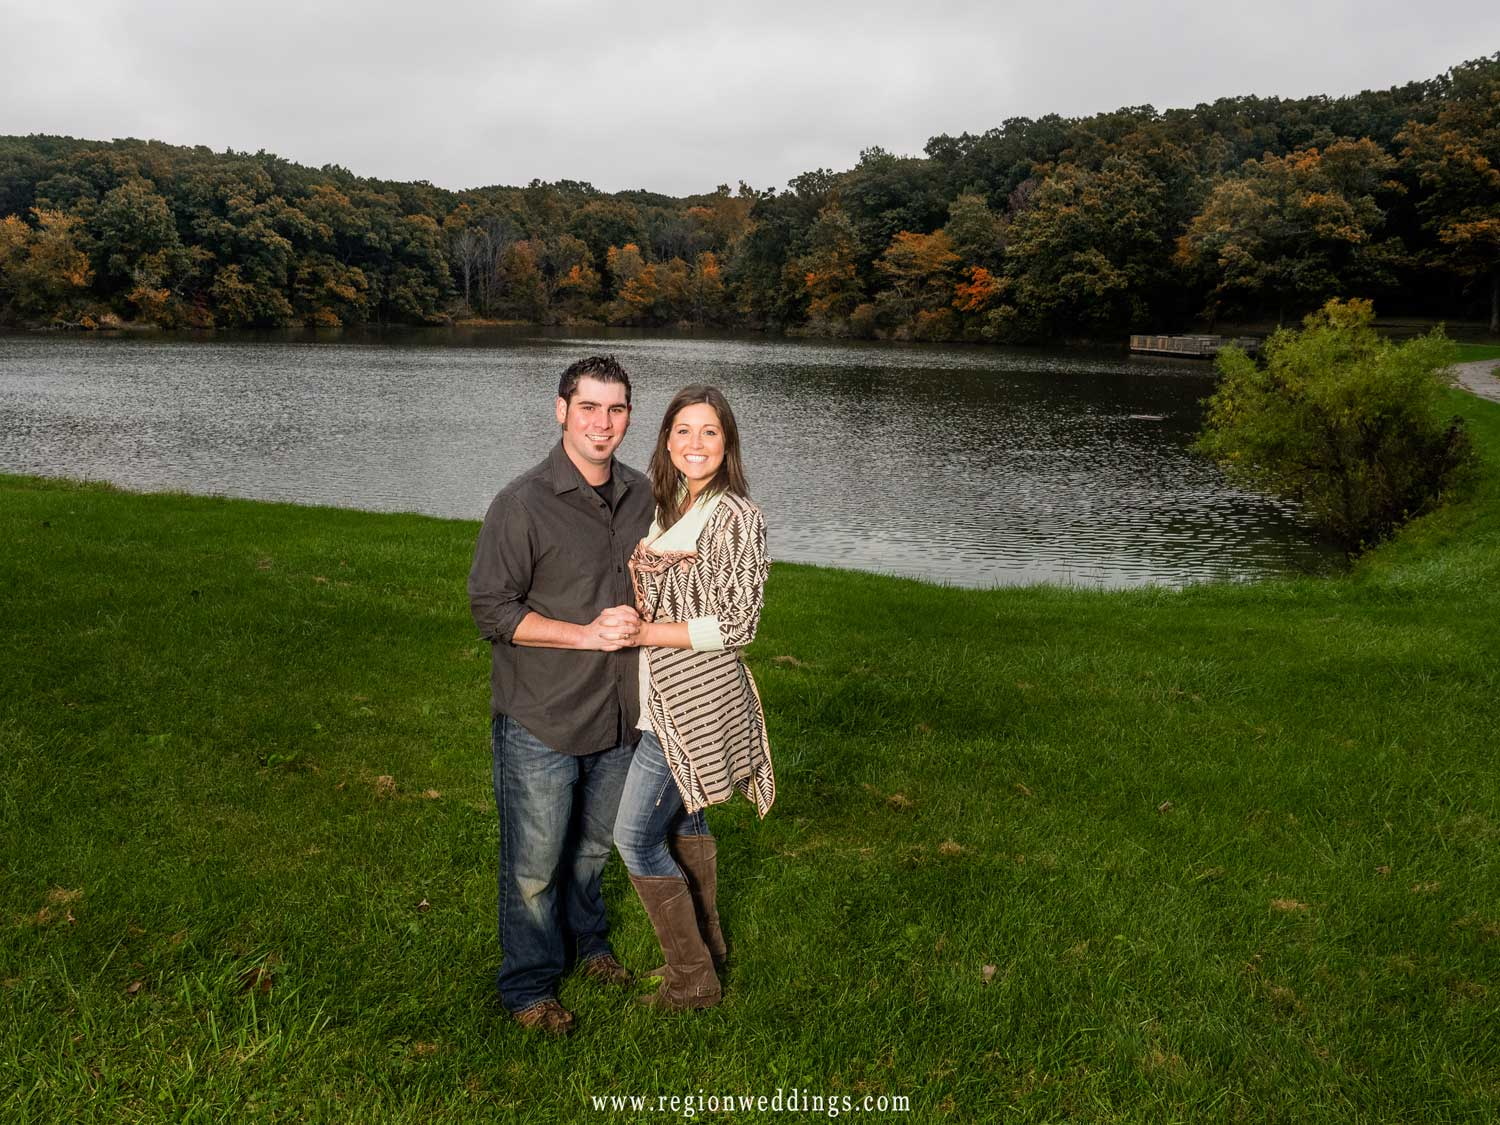 A recently engaged couple in front of Lemon Lake with Fall color in the trees.